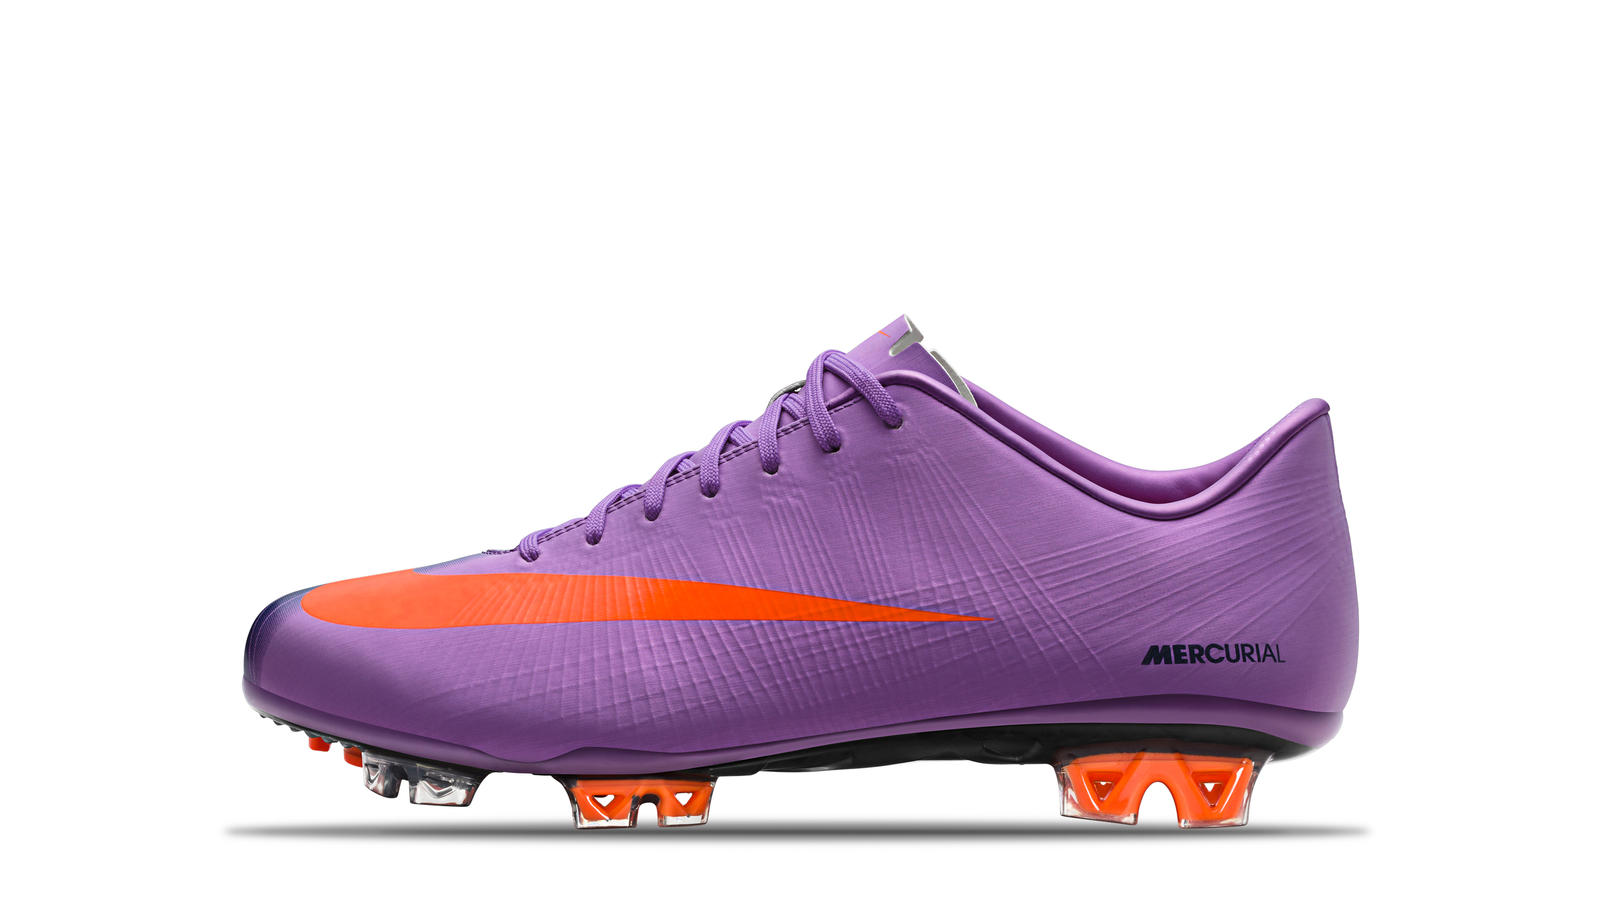 2010 Mercurial Superfly II Violet Poppy Obsidian Orange